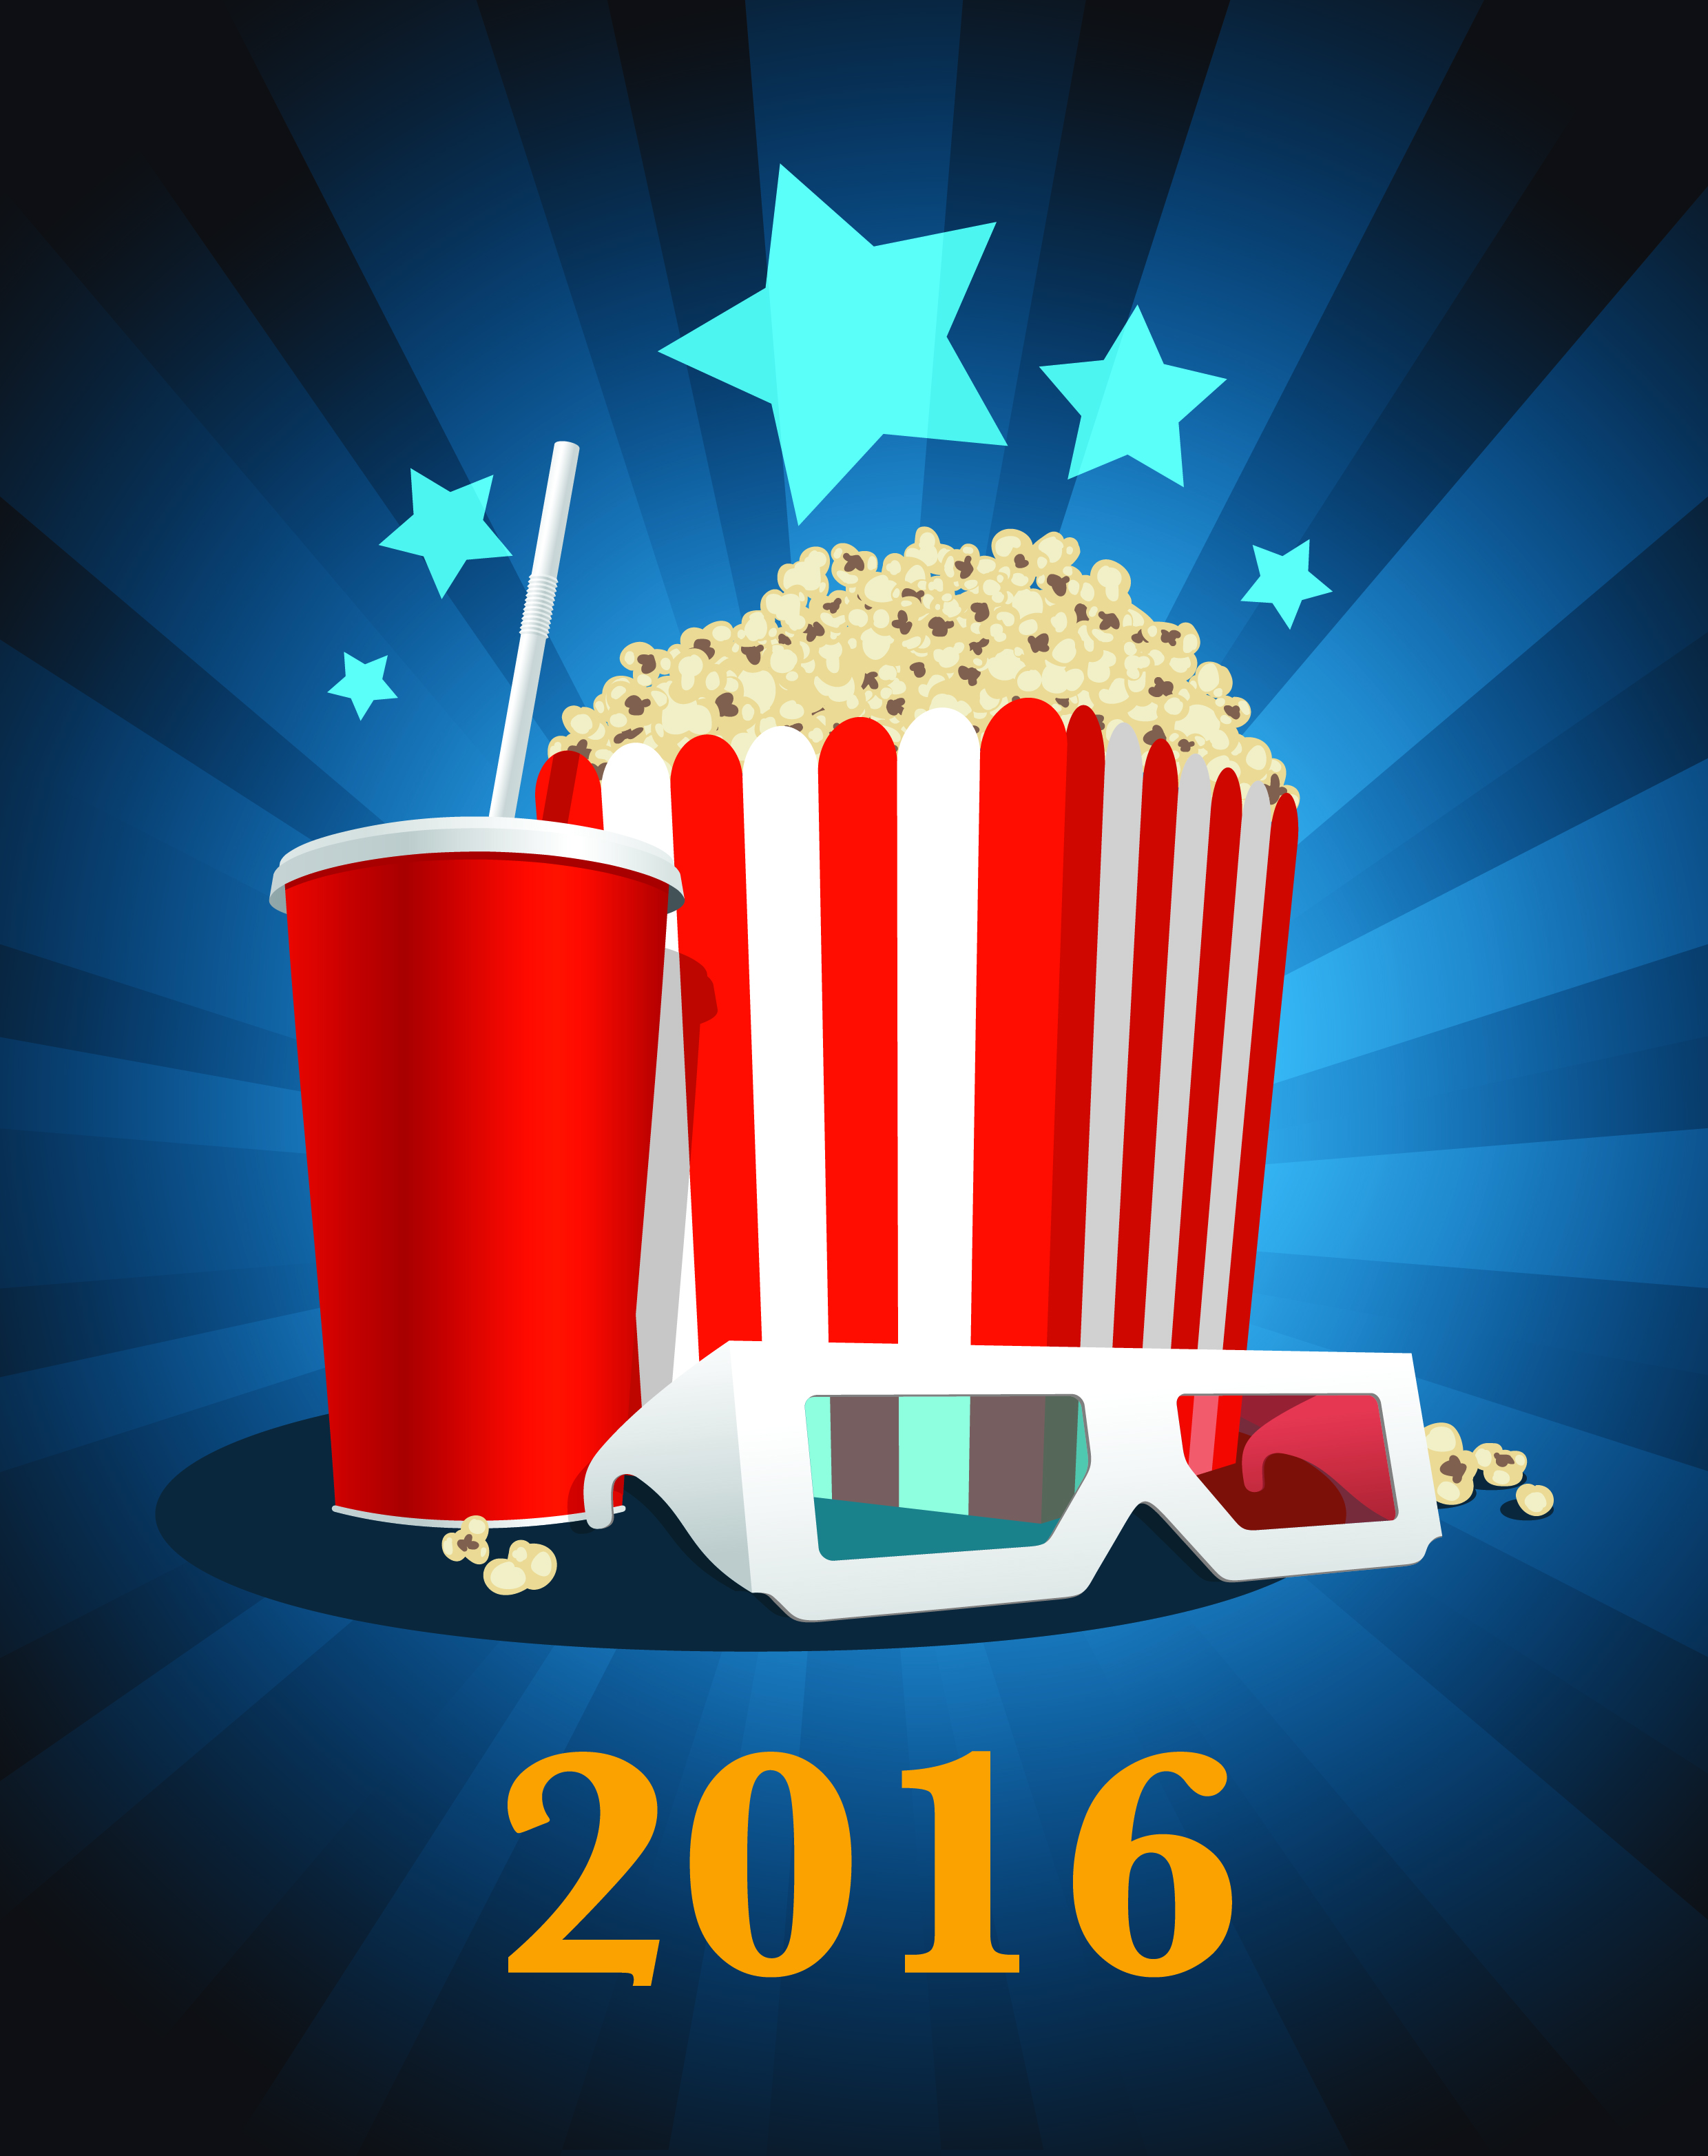 Top 20 Movie Must Sees In 2016 Popcorn On Pinterest Short Circuit 2 The Princess Bride And Movies Cinemaposter2016